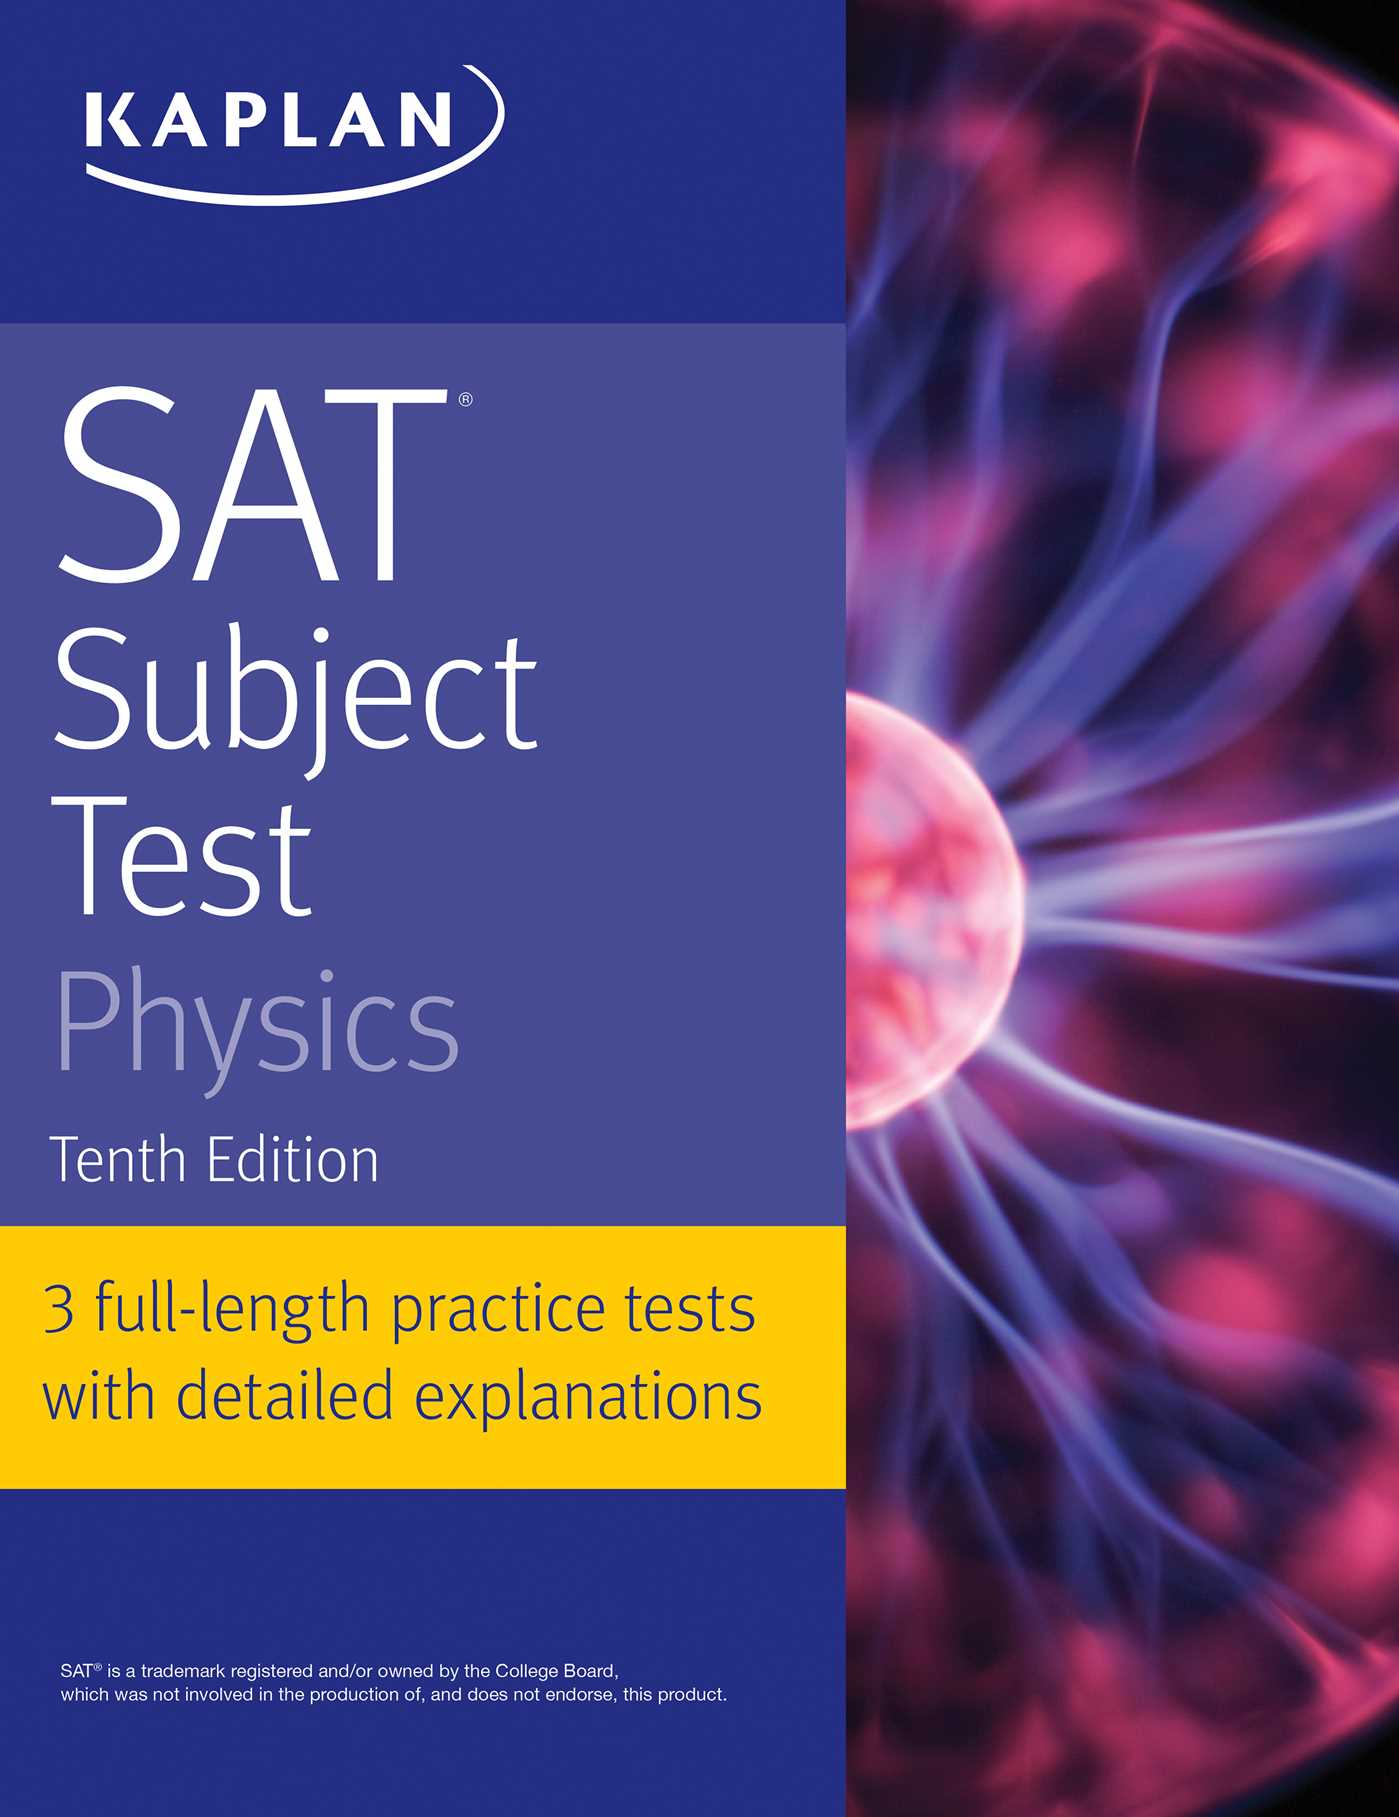 Sat subject test physics ebook by kaplan test prep official book cover image jpg sat subject test physics tenth edition ebook 9781506212791 fandeluxe Image collections